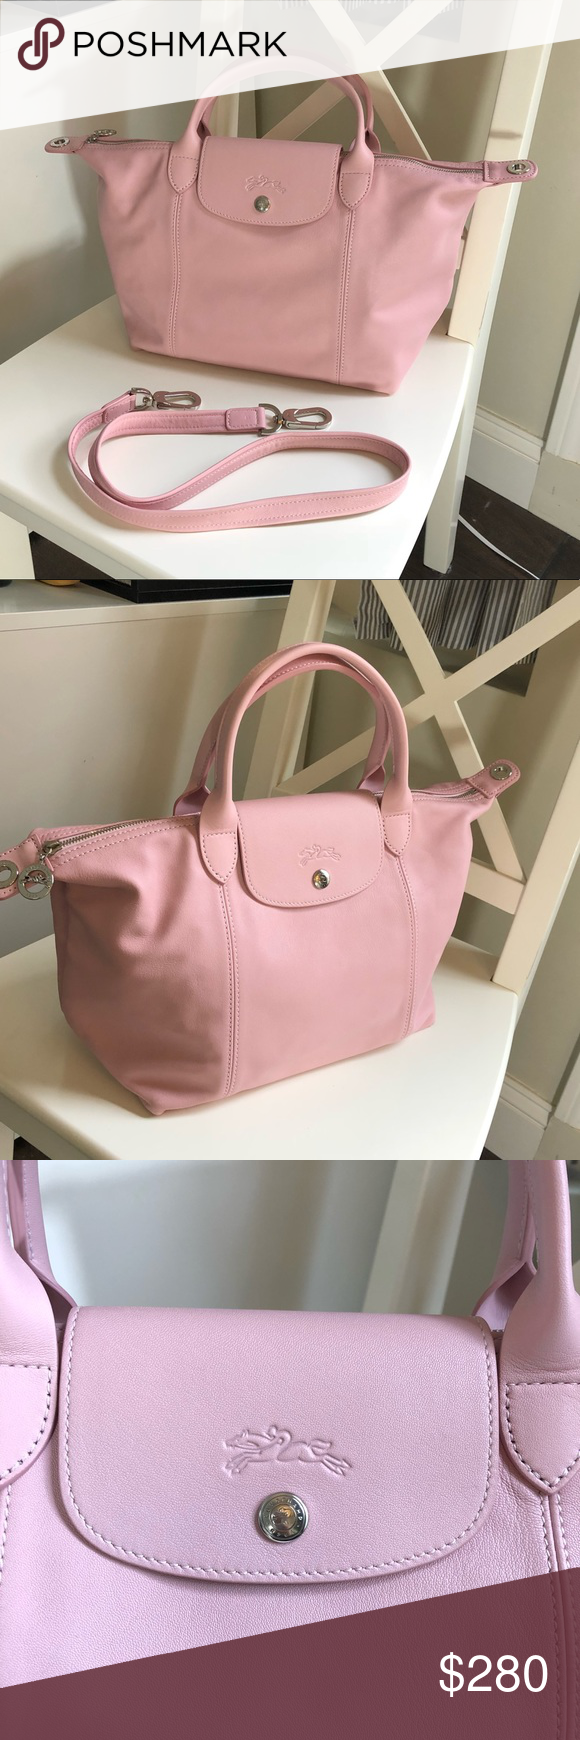 Longchamp Le Pliage Cuir leather top handle tote This is the small ...